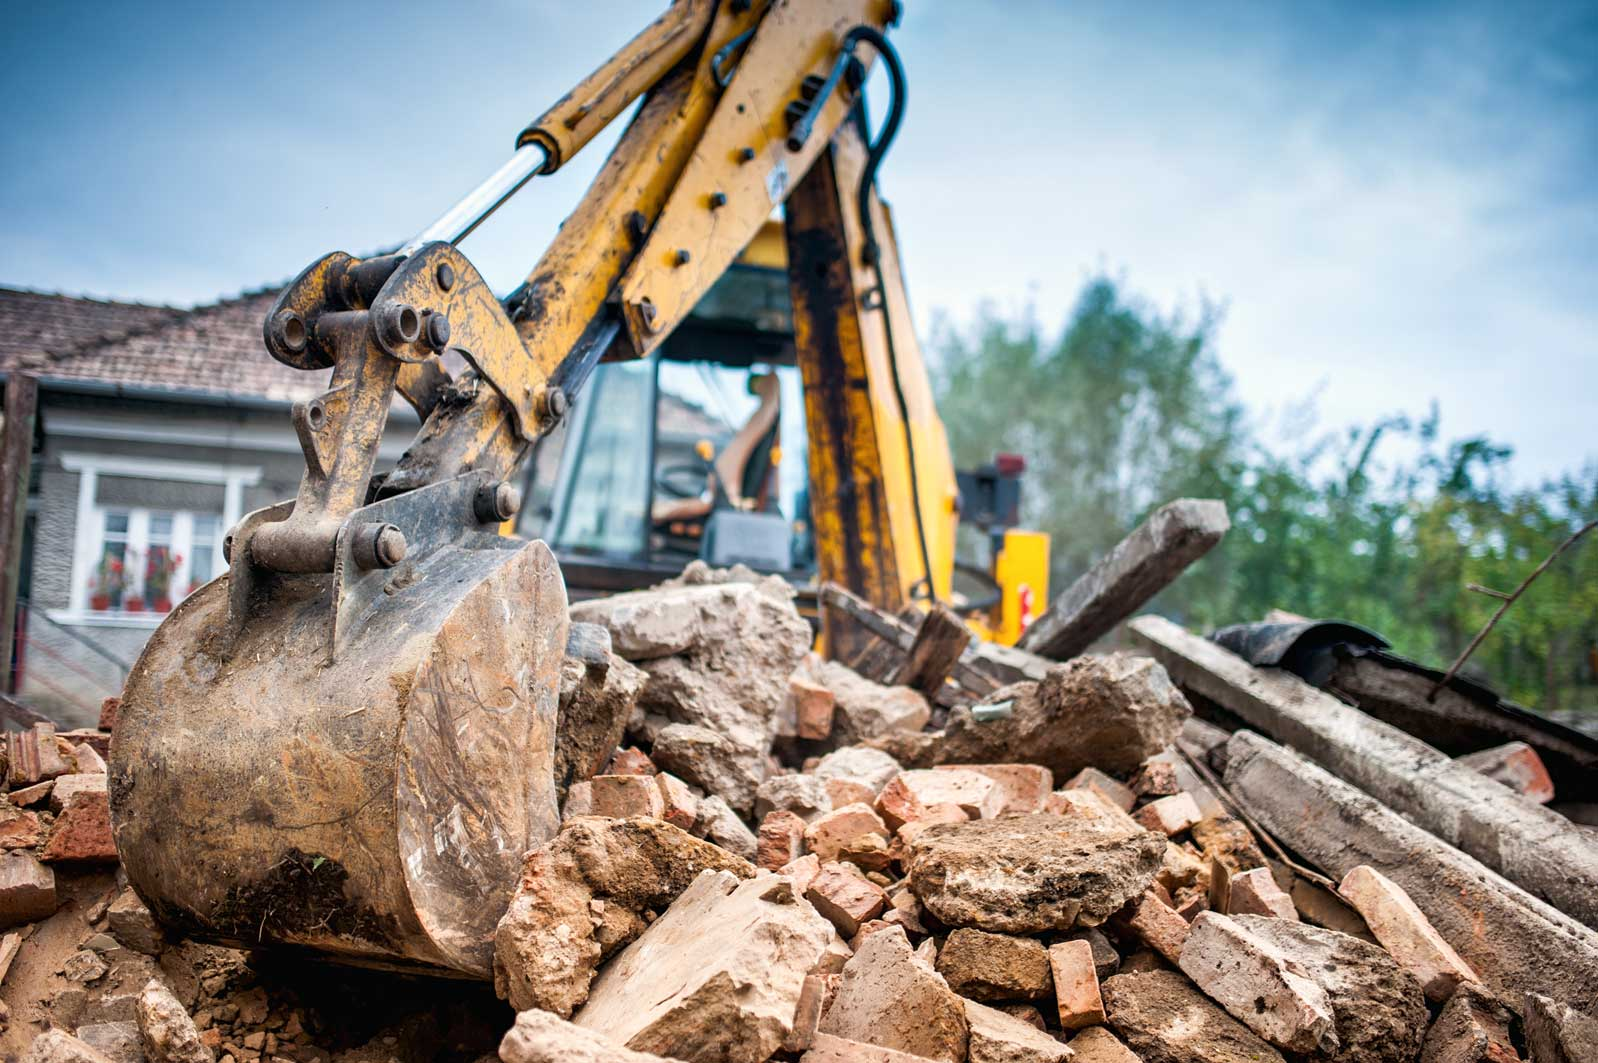 Ensure you protect your business with the right level of groundwork contractors insurance